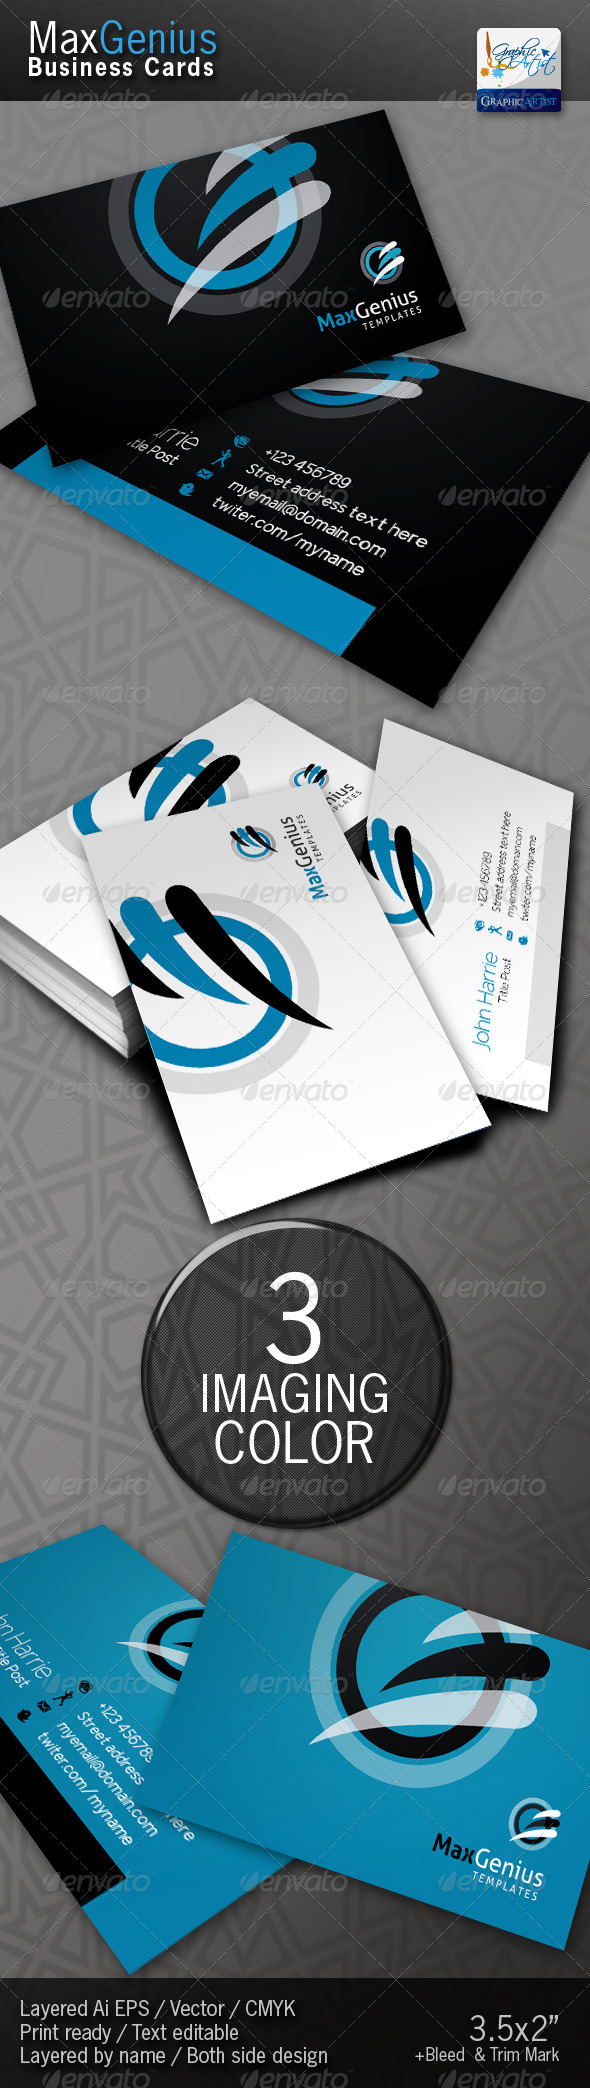 GraphicRiver MaxGenius Business Cards 1455703